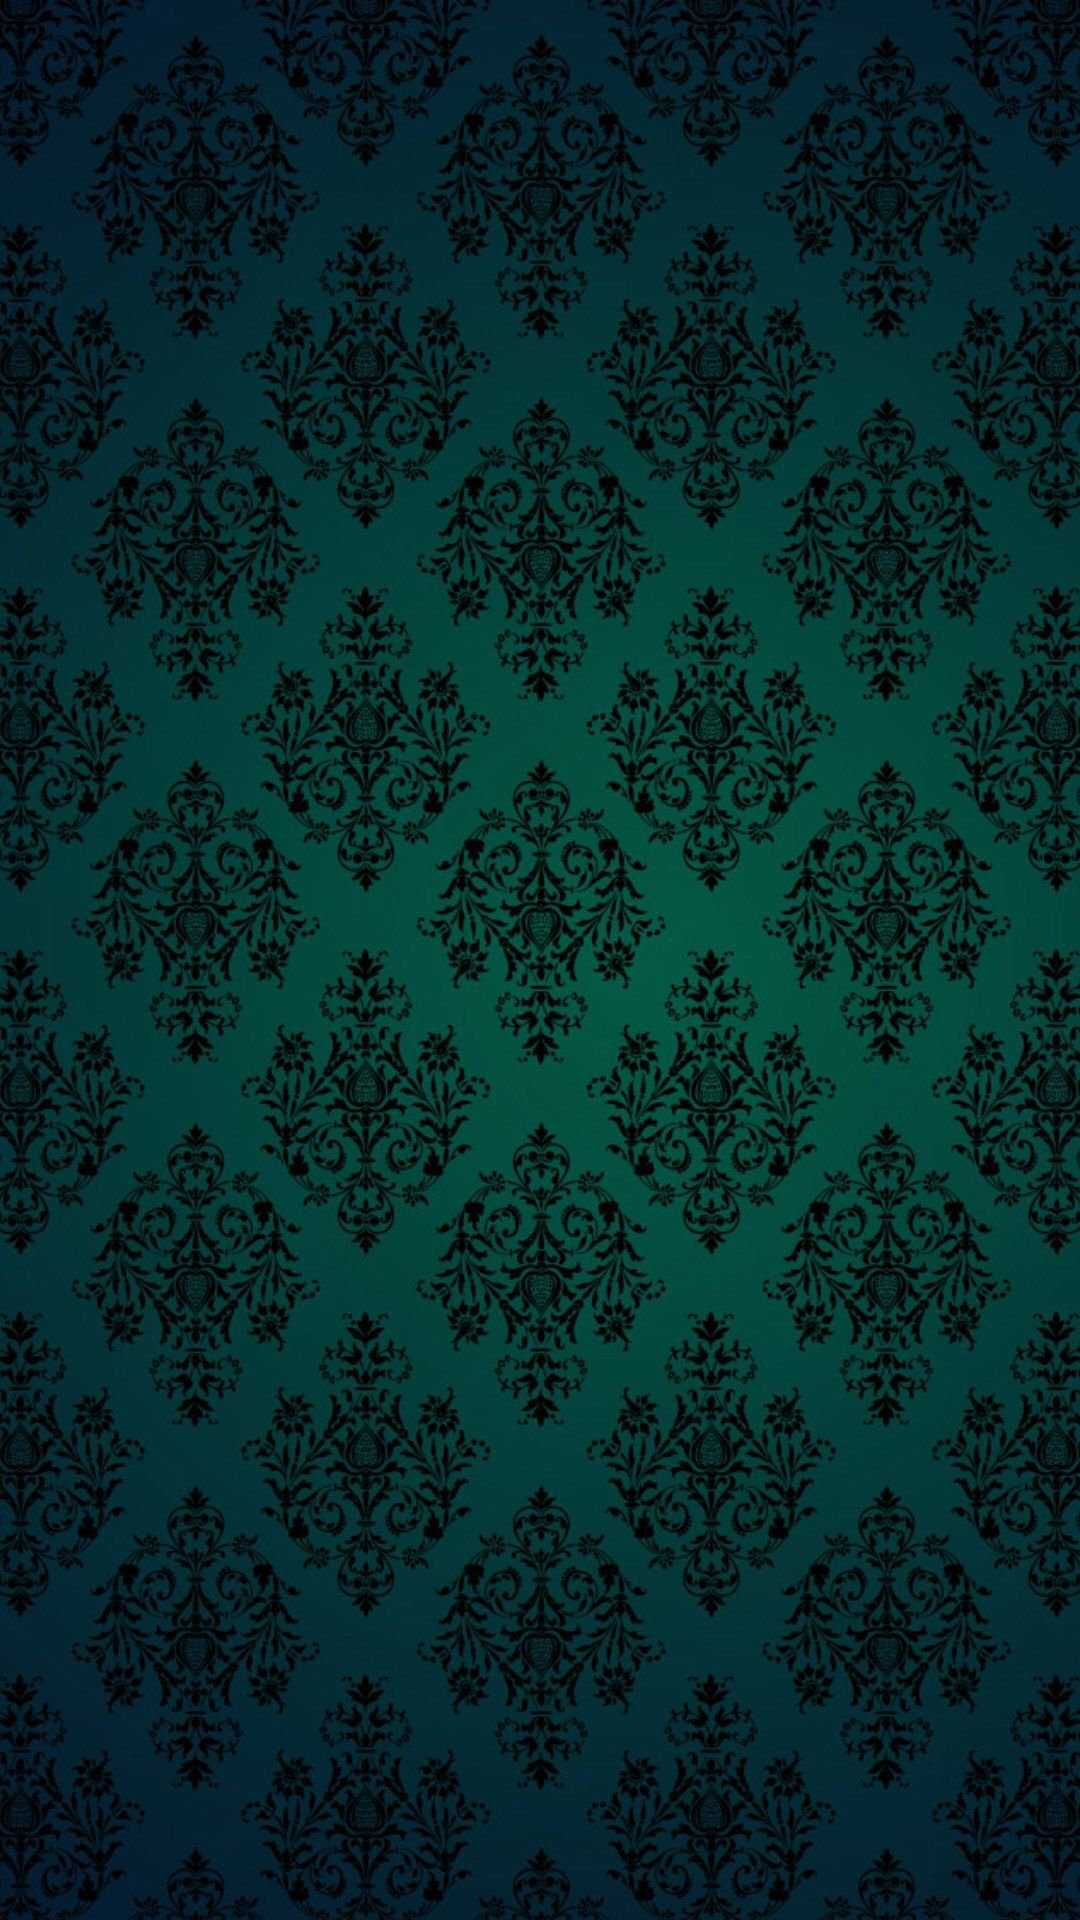 Pin By Rylee Clifton On I P H O N E Gothic Wallpaper Antique Wallpaper Green Wallpaper